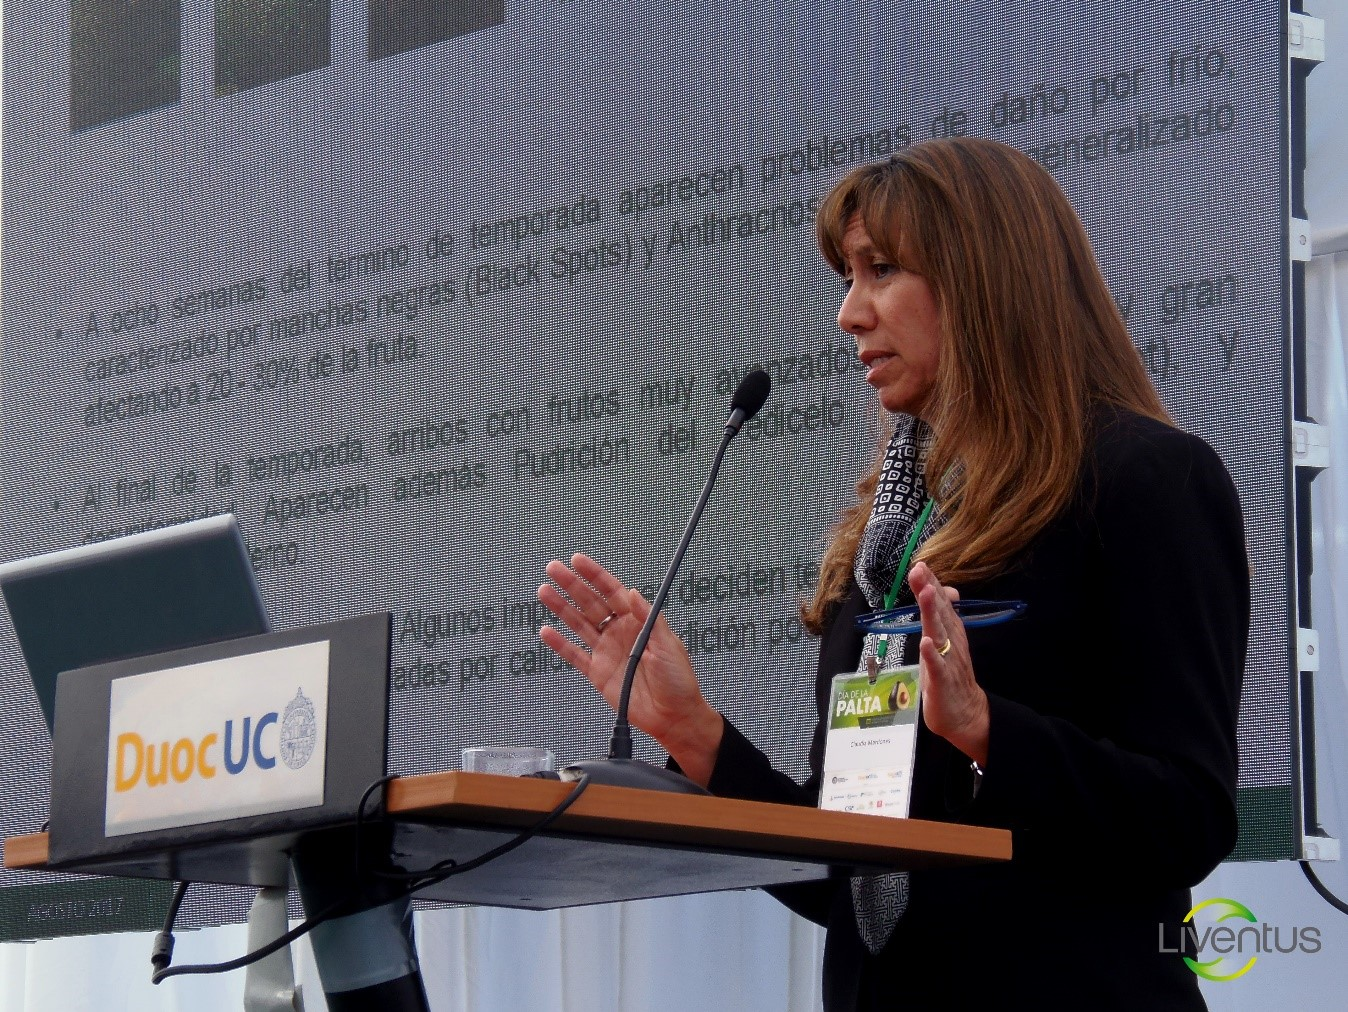 Caption: Claudia Mardones, General Manager of Liventus Global, during her presentation. She did an analysis of the different scenarios that the last season of Chilean avocado exports faced in international market.